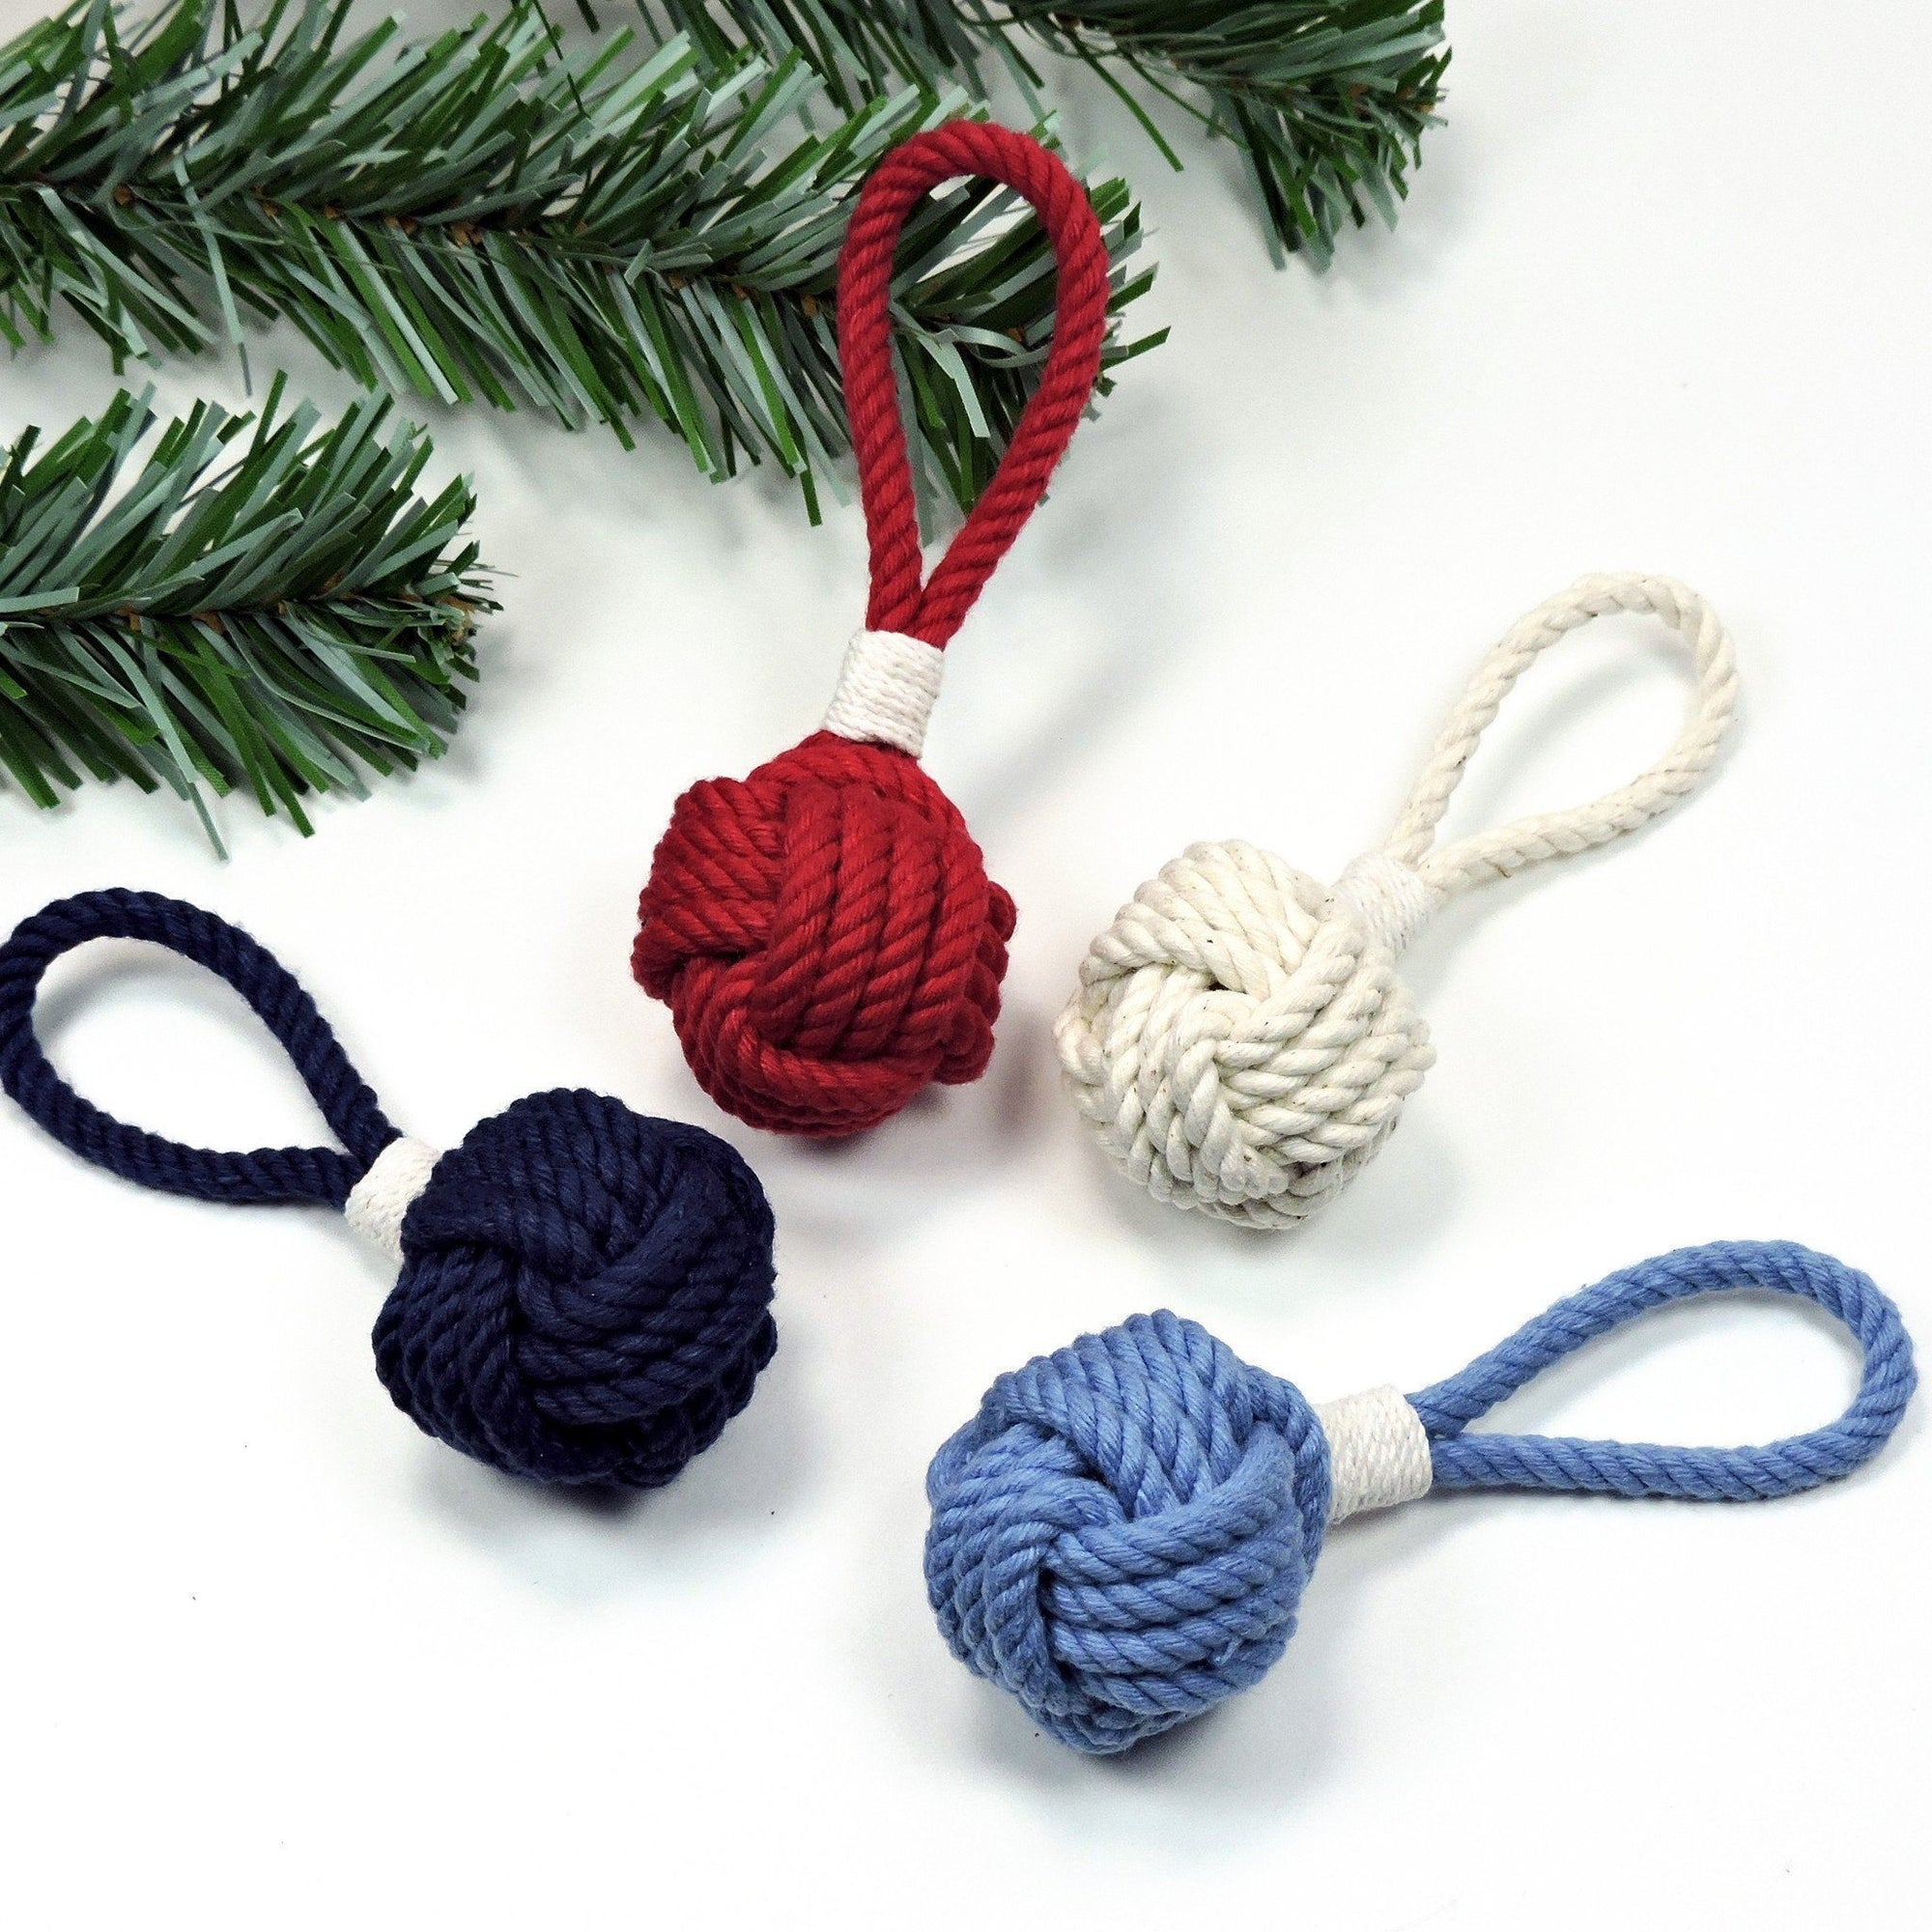 Monkey Fist Christmas Ornament, Nautical Holiday Ball - Mystic Knotwork